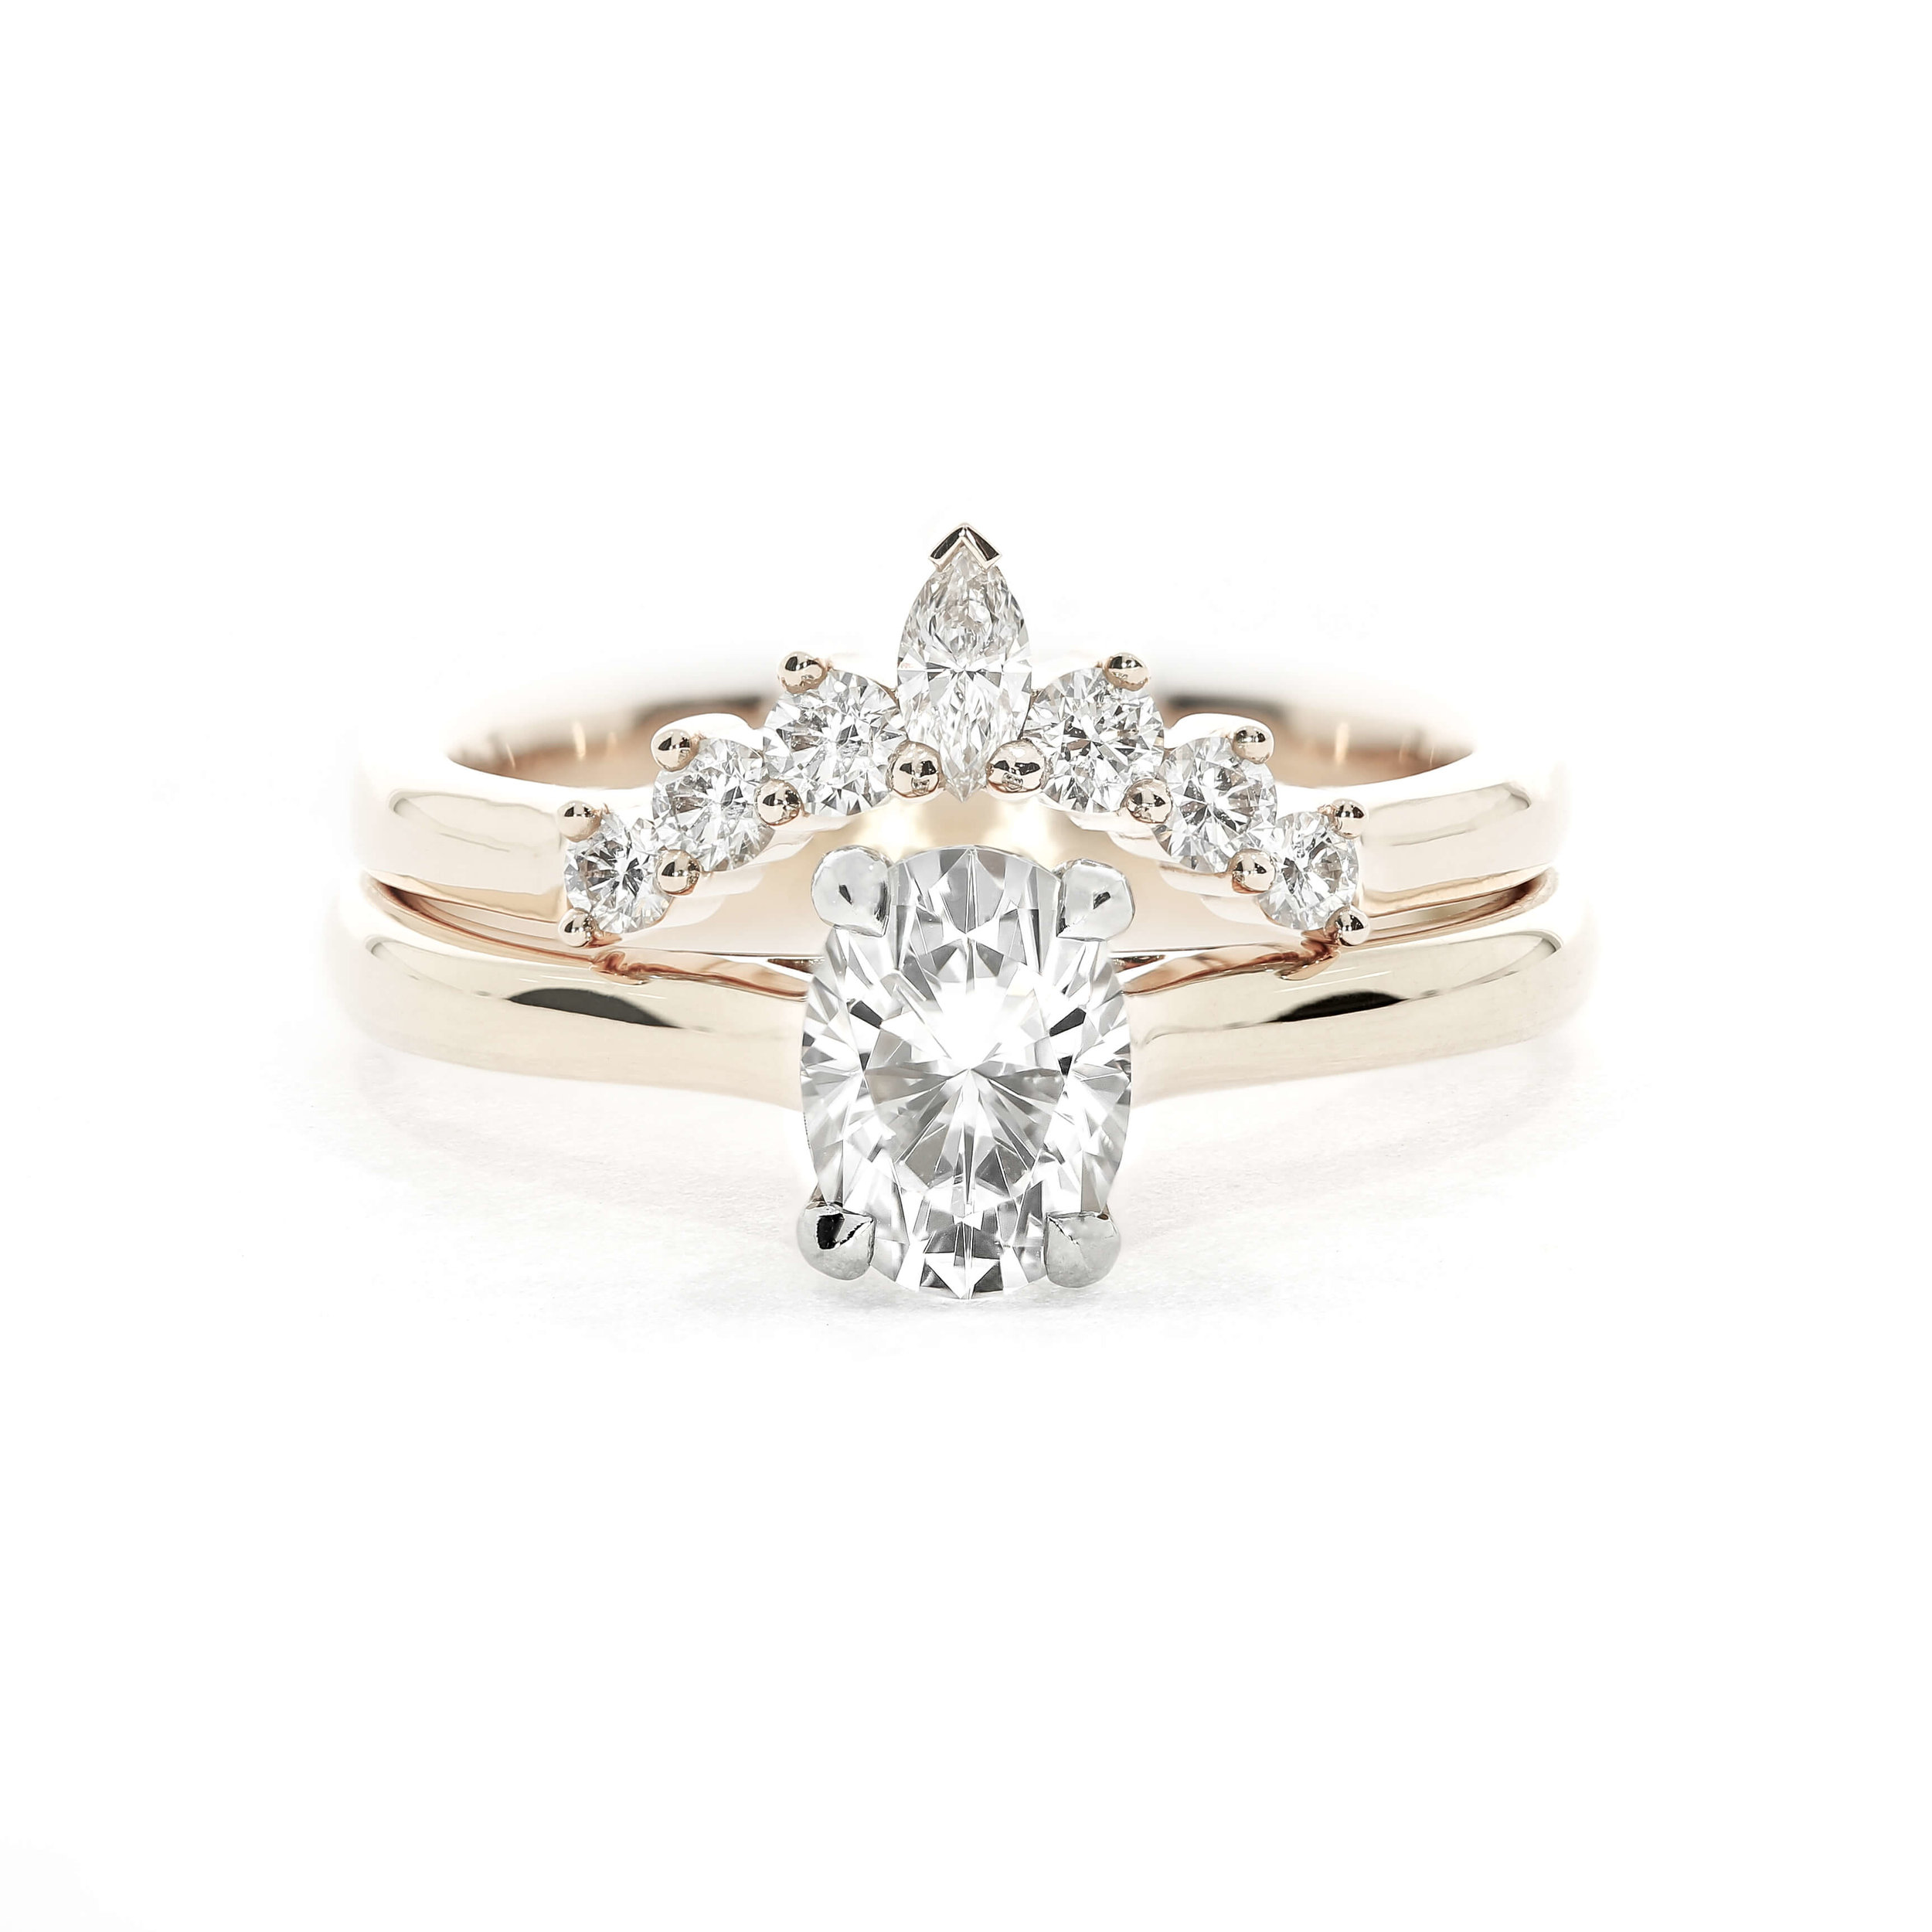 At Queensmith, we love to add a bit of sparkle to solitaire engagement rings with diamond wedding bands